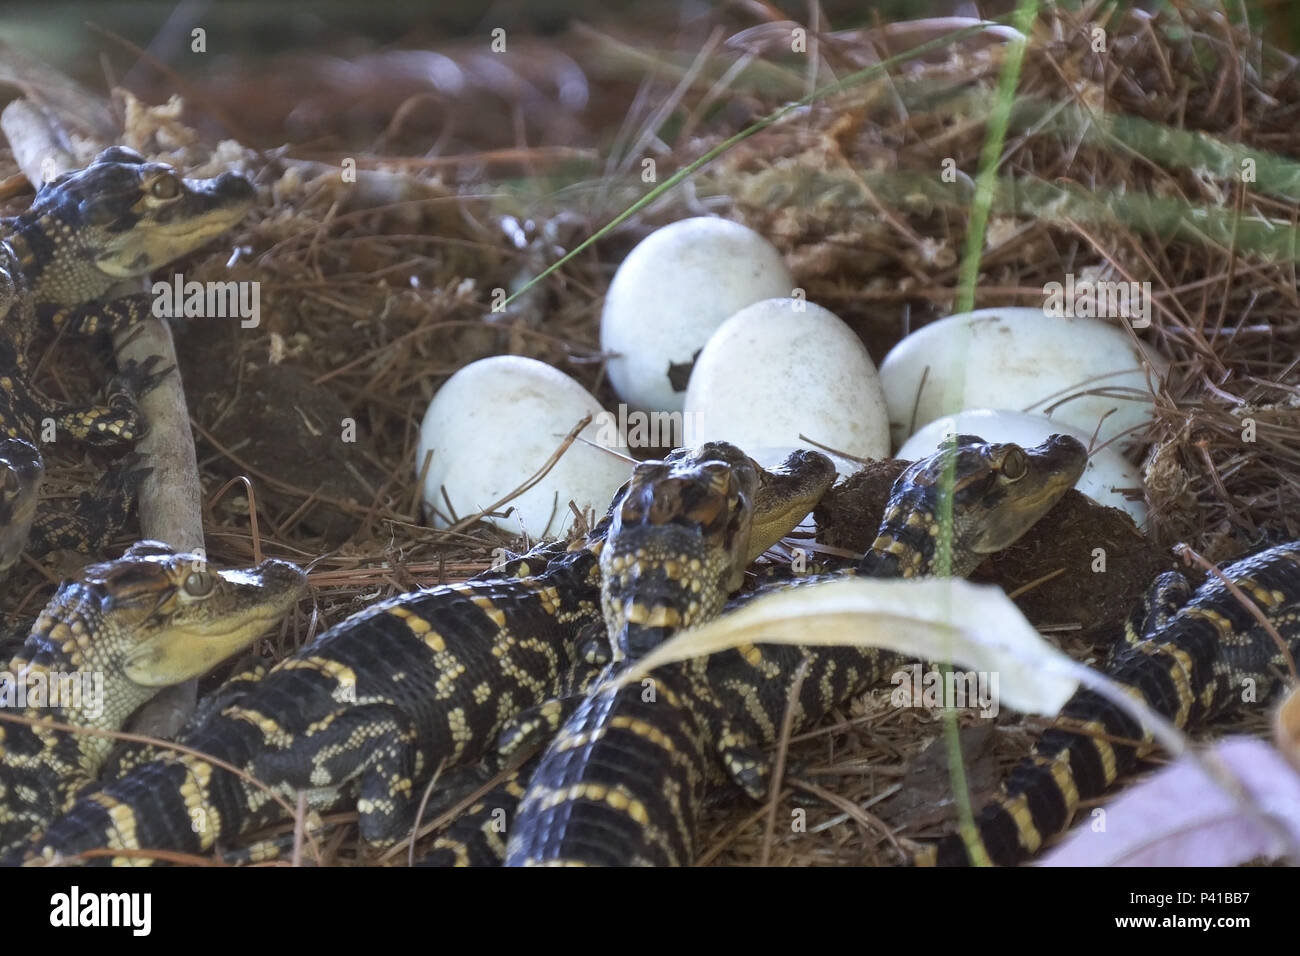 Newborn alligator near the egg laying in the nest. - Stock Image